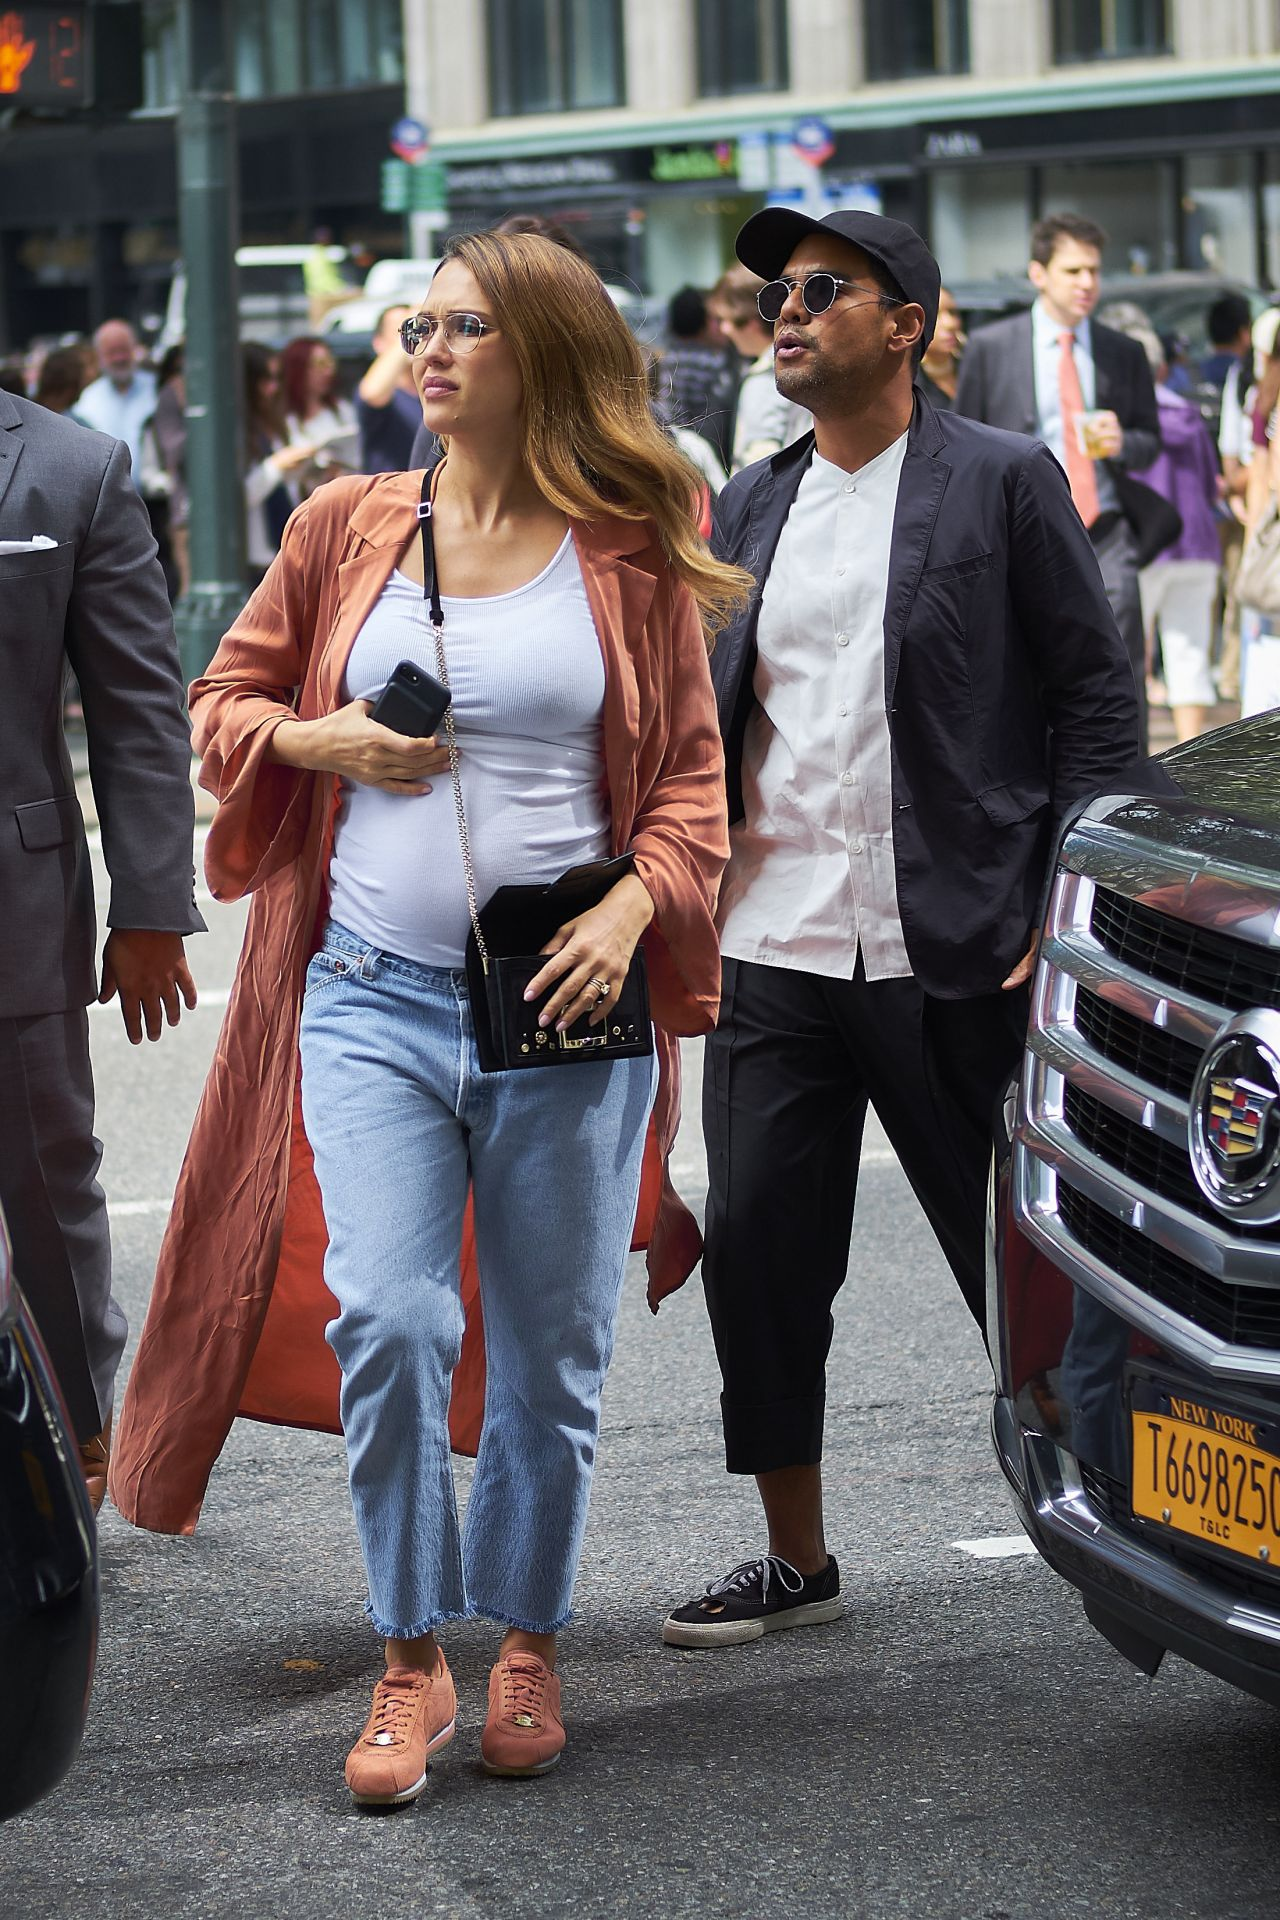 http://celebmafia.com/wp-content/uploads/2017/09/jessica-alba-with-her-brother-joshua-in-nyc-09-07-2017-0.jpg